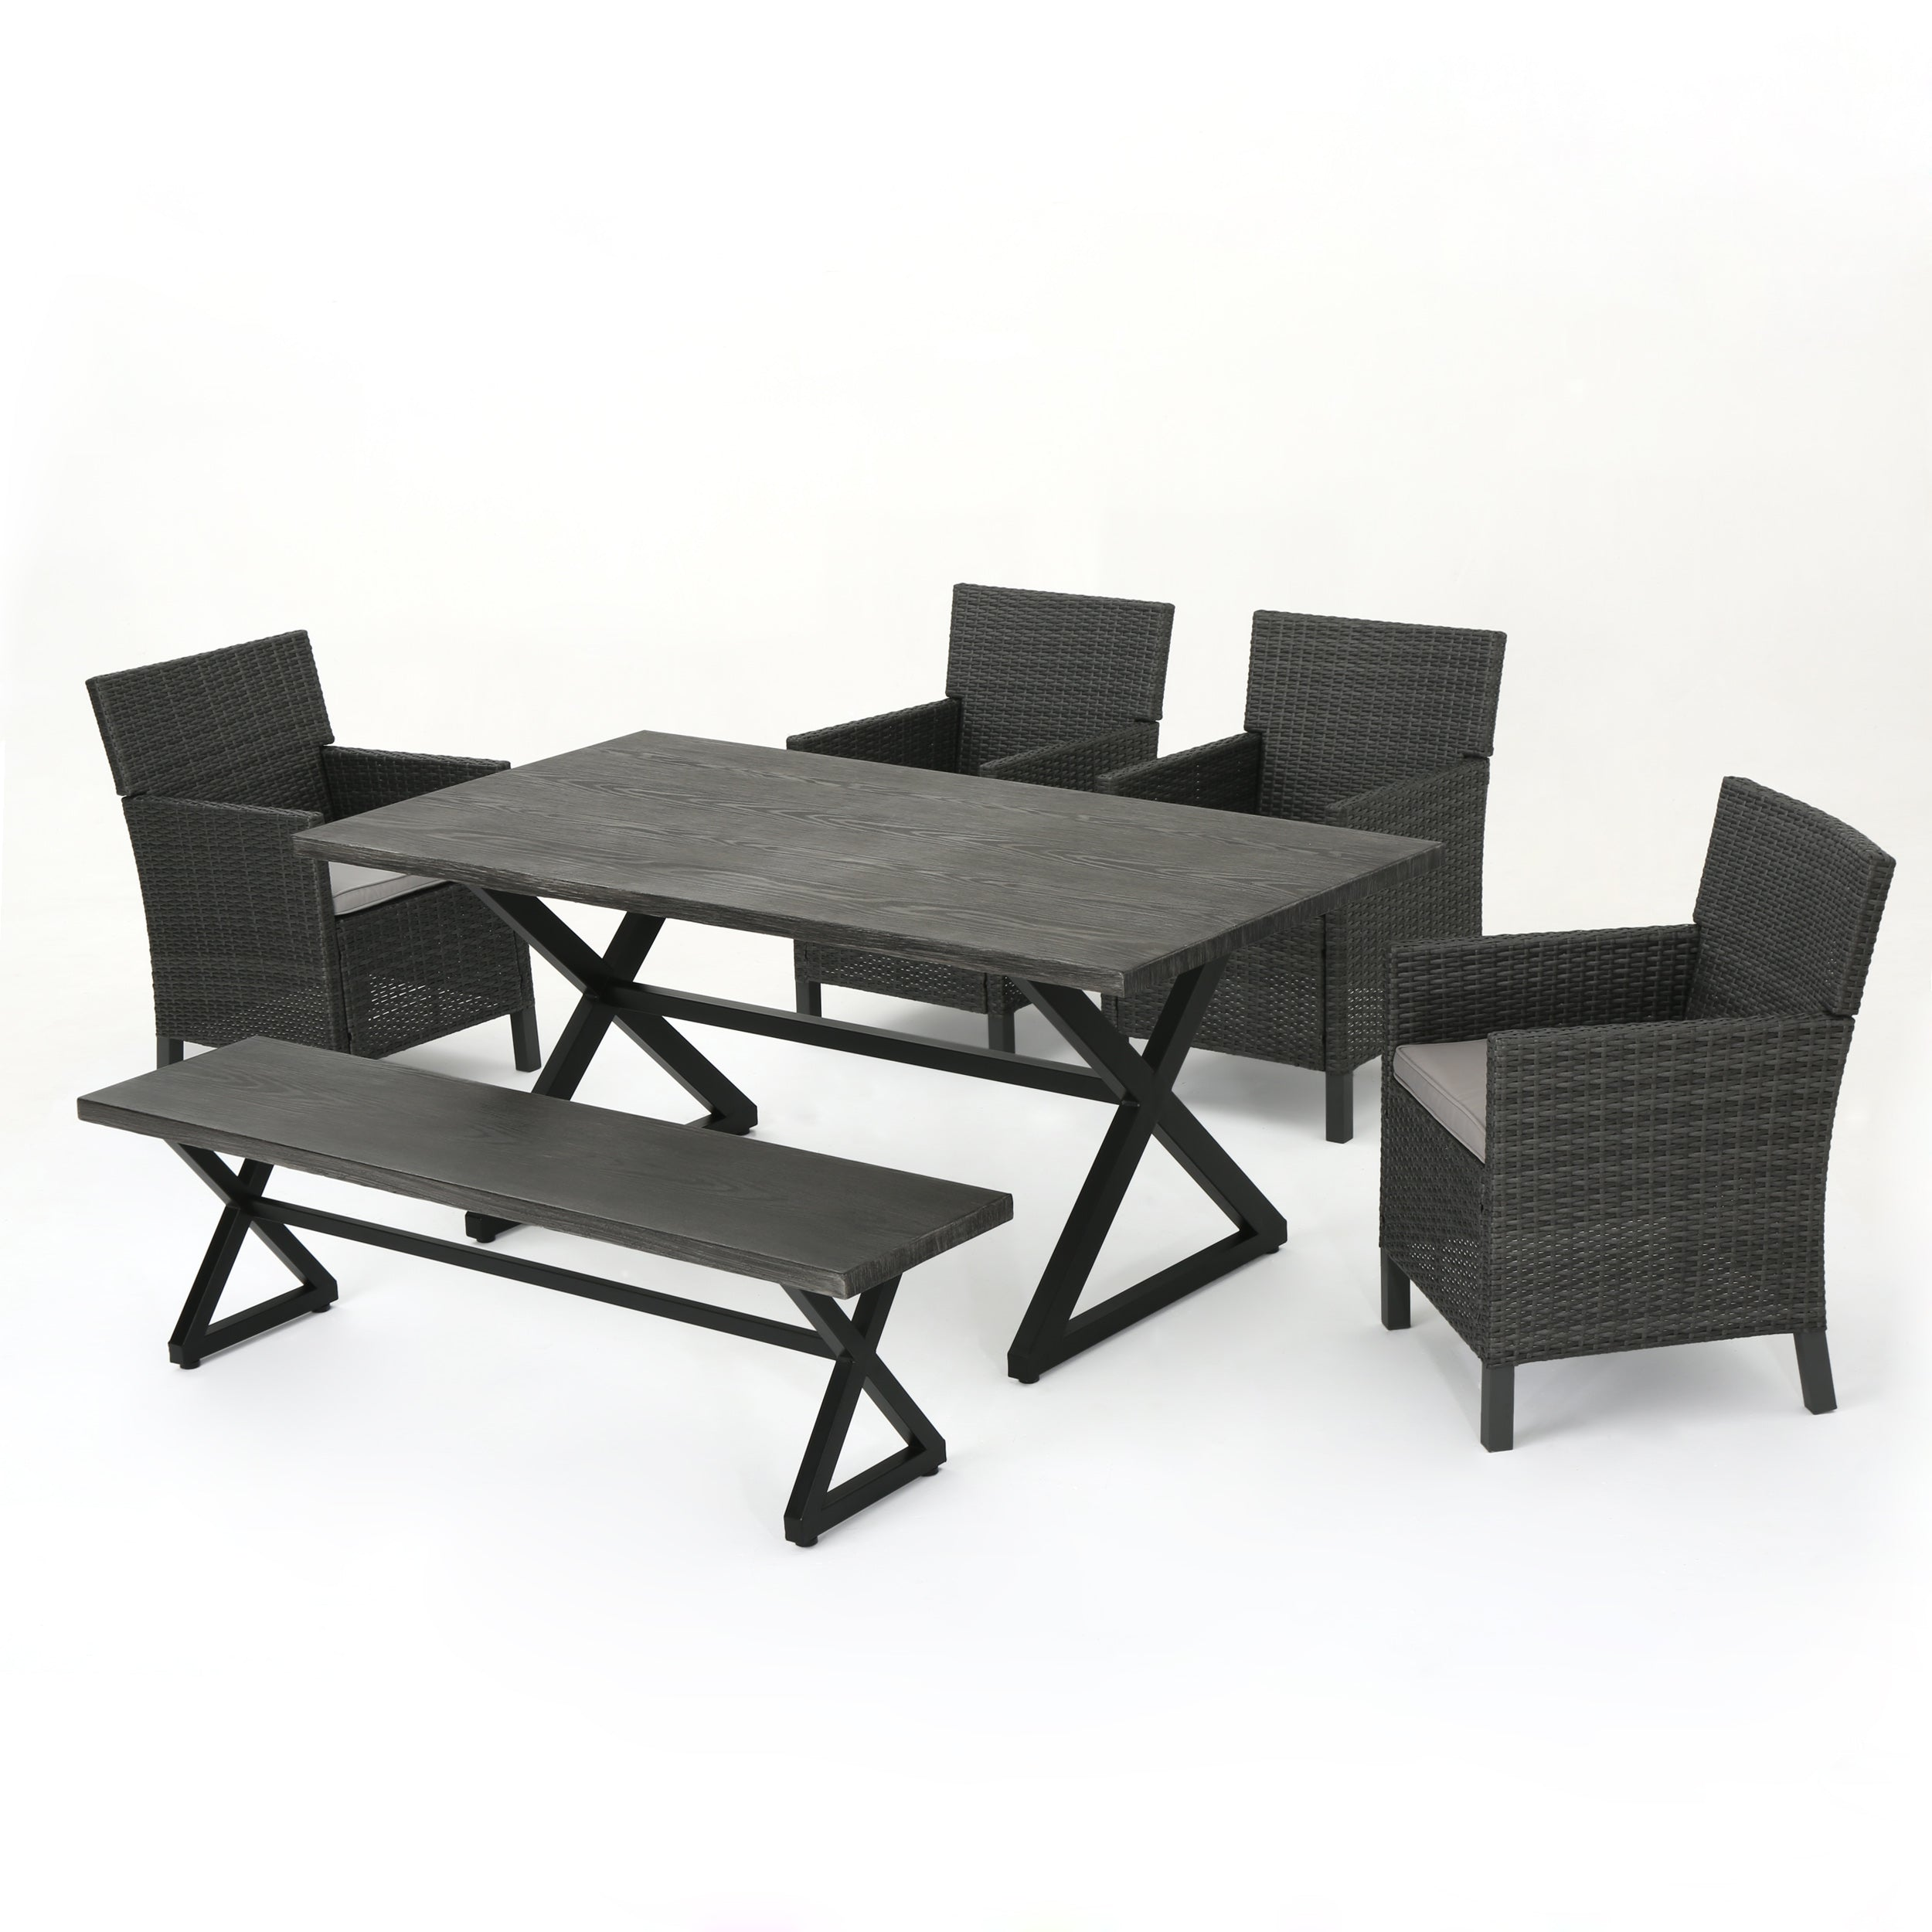 Ainna Outdoor 6 Piece Wicker Dining Set with Aluminum Dining Table GrayLight Gray